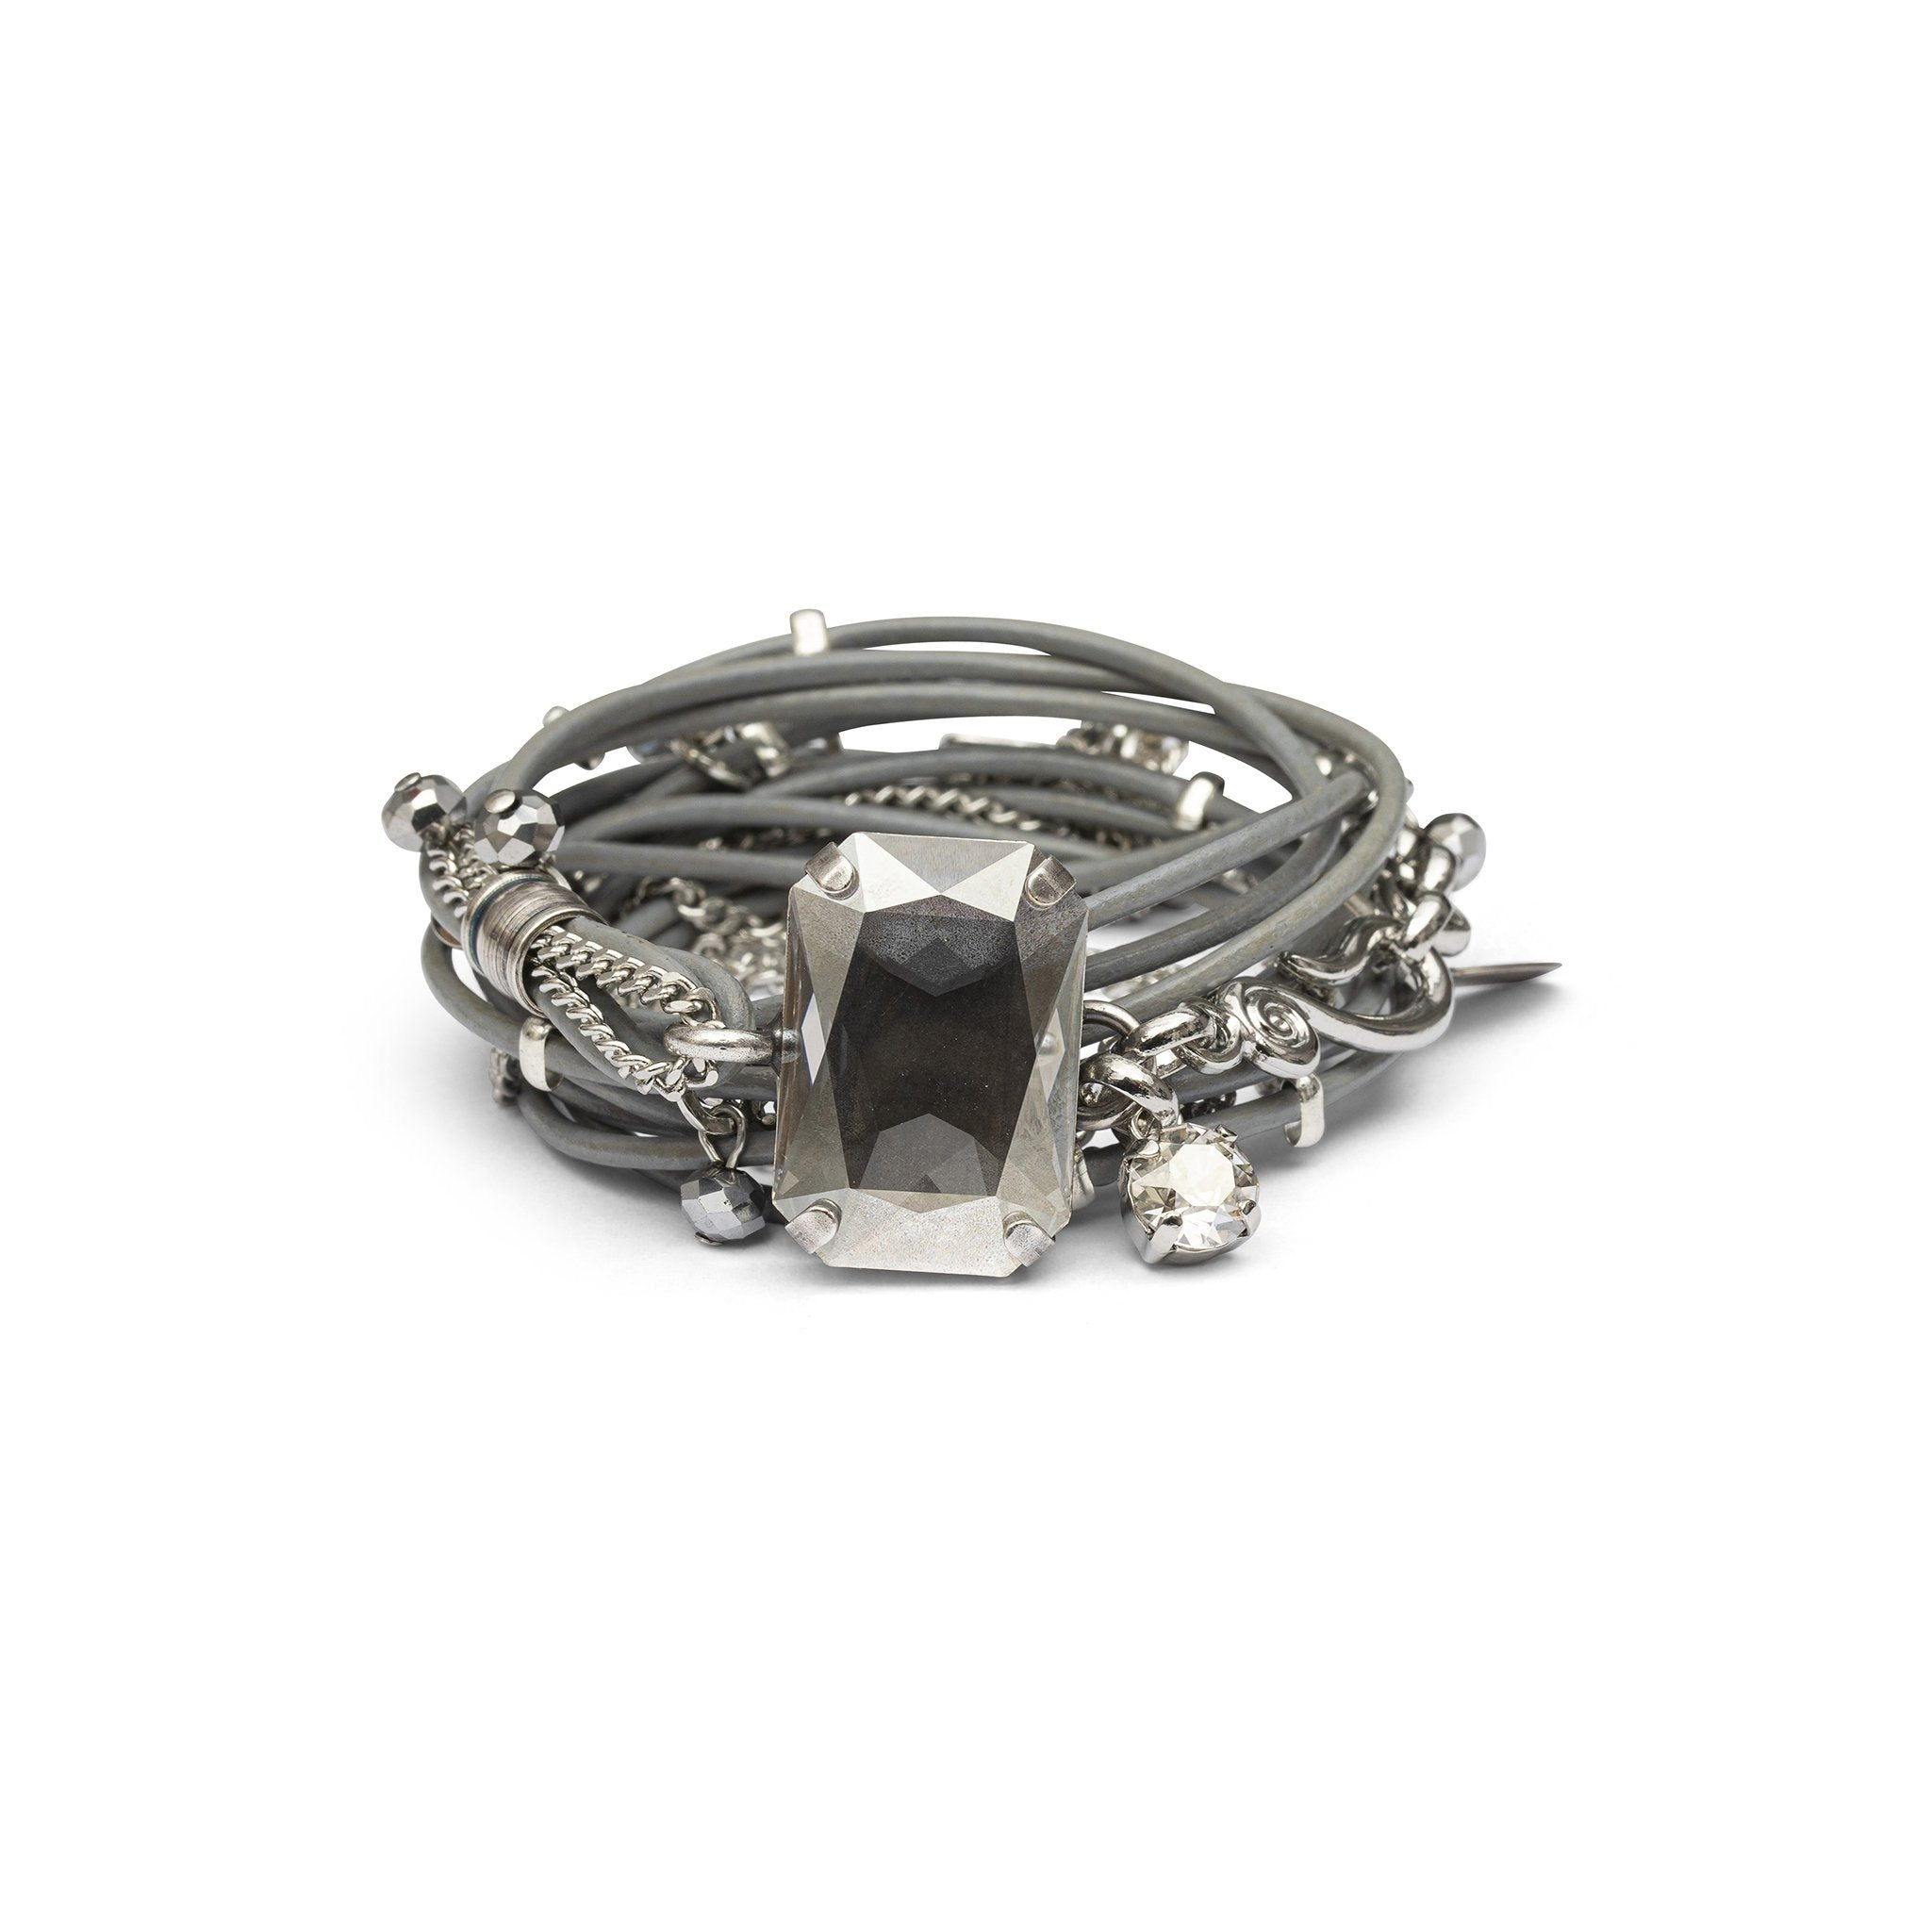 Stardust Leather Bracelet - Gray & Silver